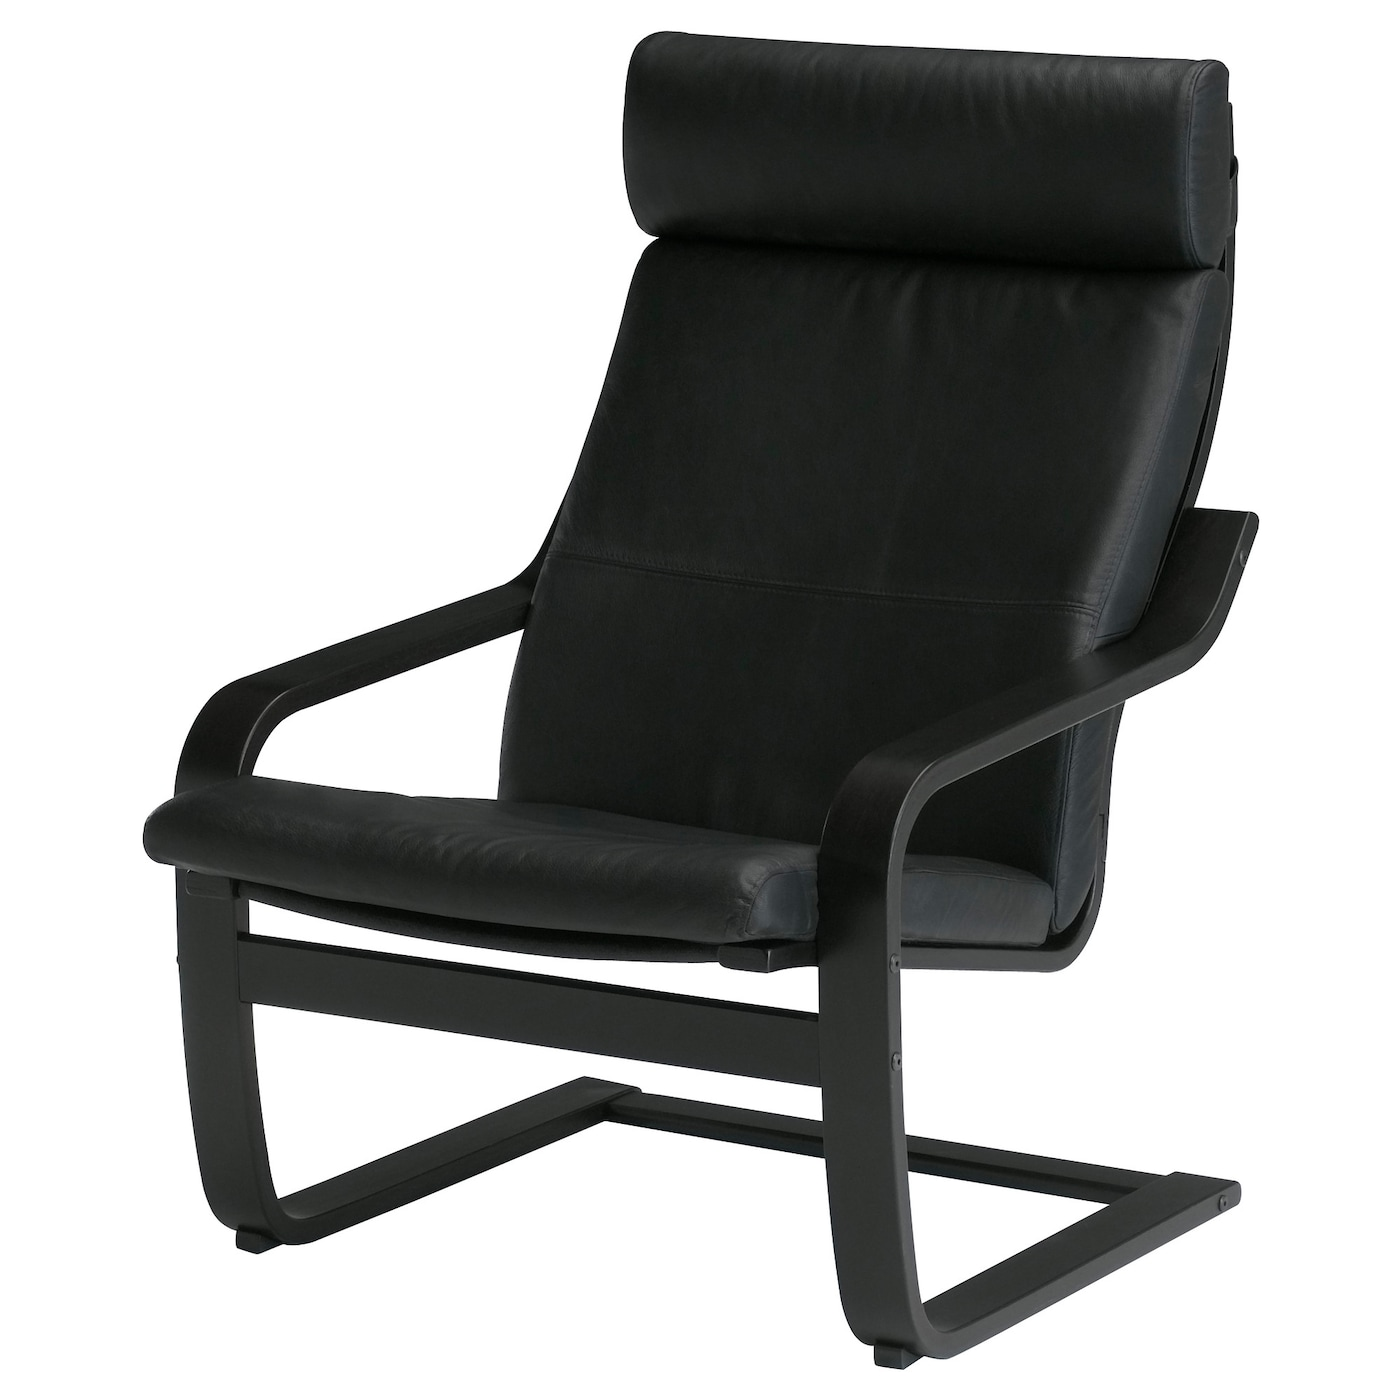 po ng armchair black brown smidig black ikea. Black Bedroom Furniture Sets. Home Design Ideas